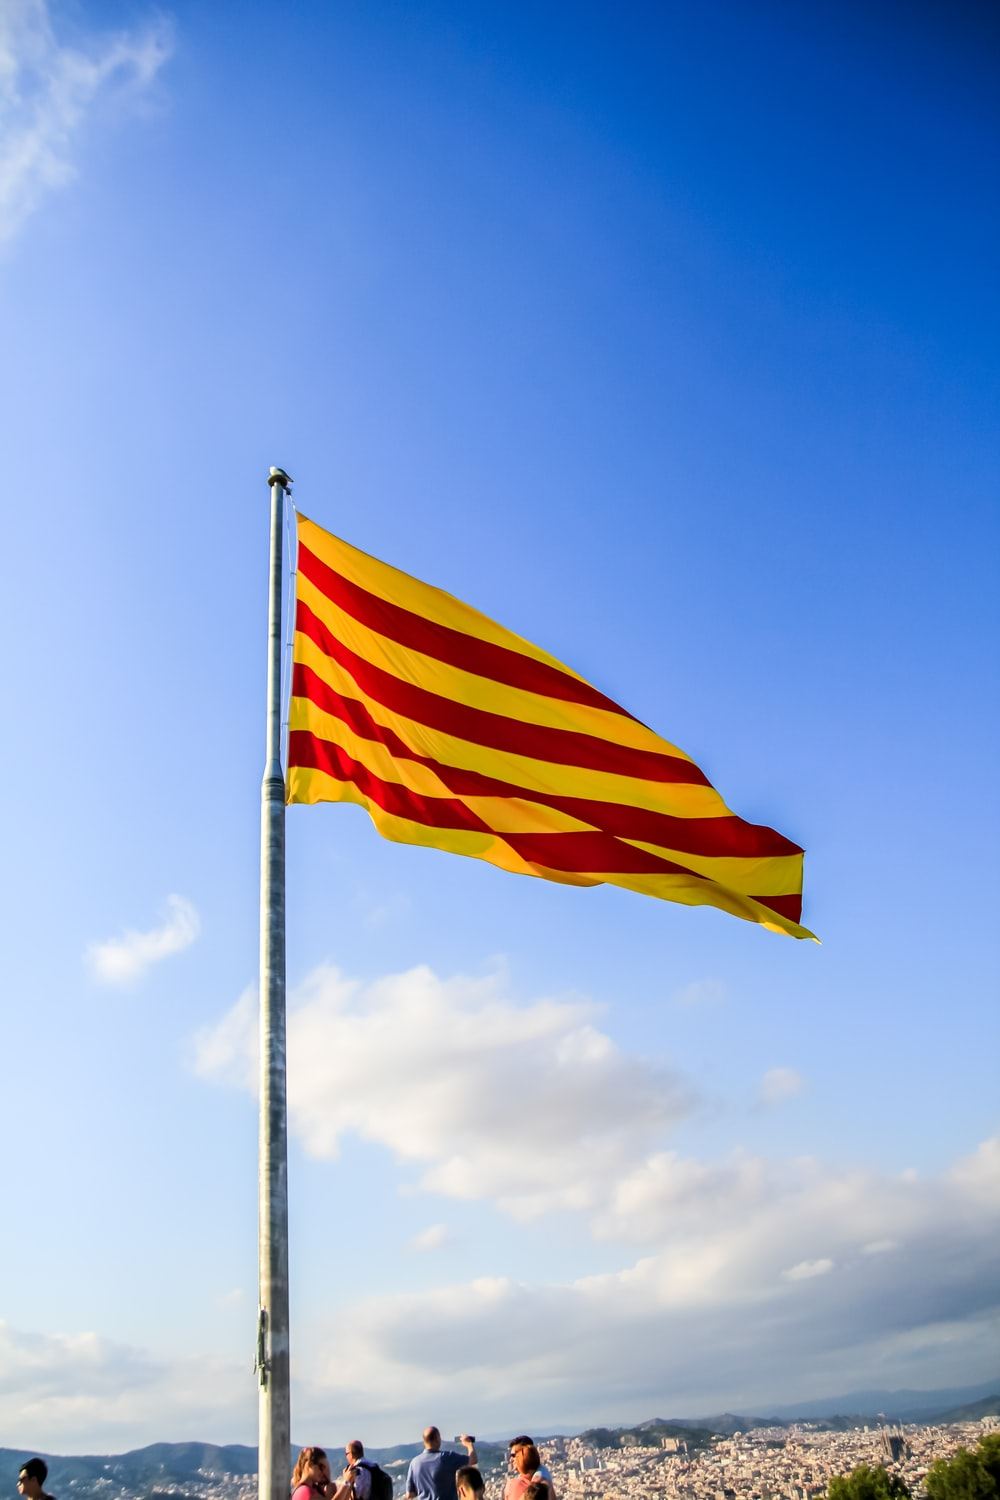 red yellow and white striped flag under blue sky during daytime